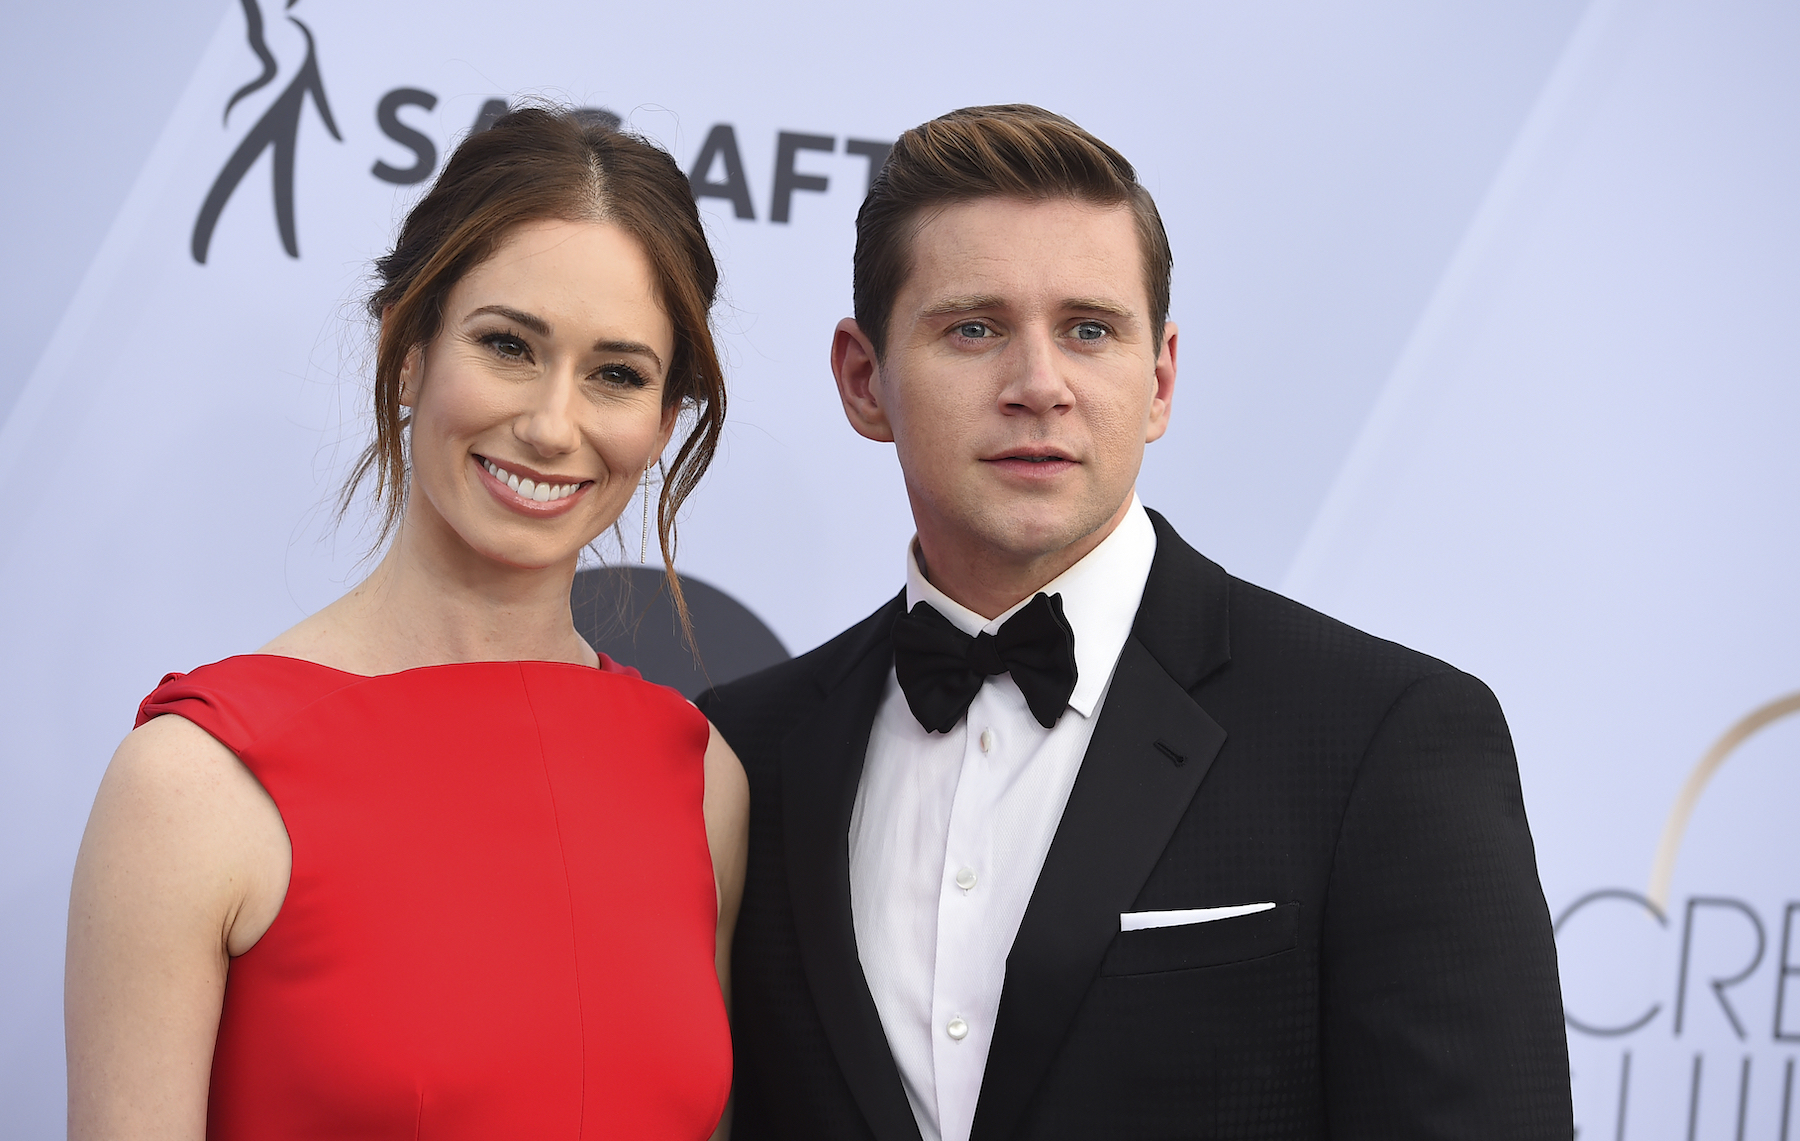 <div class='meta'><div class='origin-logo' data-origin='AP'></div><span class='caption-text' data-credit='Jordan Strauss/Invision/AP'>Jessica Blair Herman, left, and Allen Leech arrive at the 25th annual Screen Actors Guild Awards at the Shrine Auditorium & Expo Hall on Sunday, Jan. 27, 2019, in Los Angeles.</span></div>